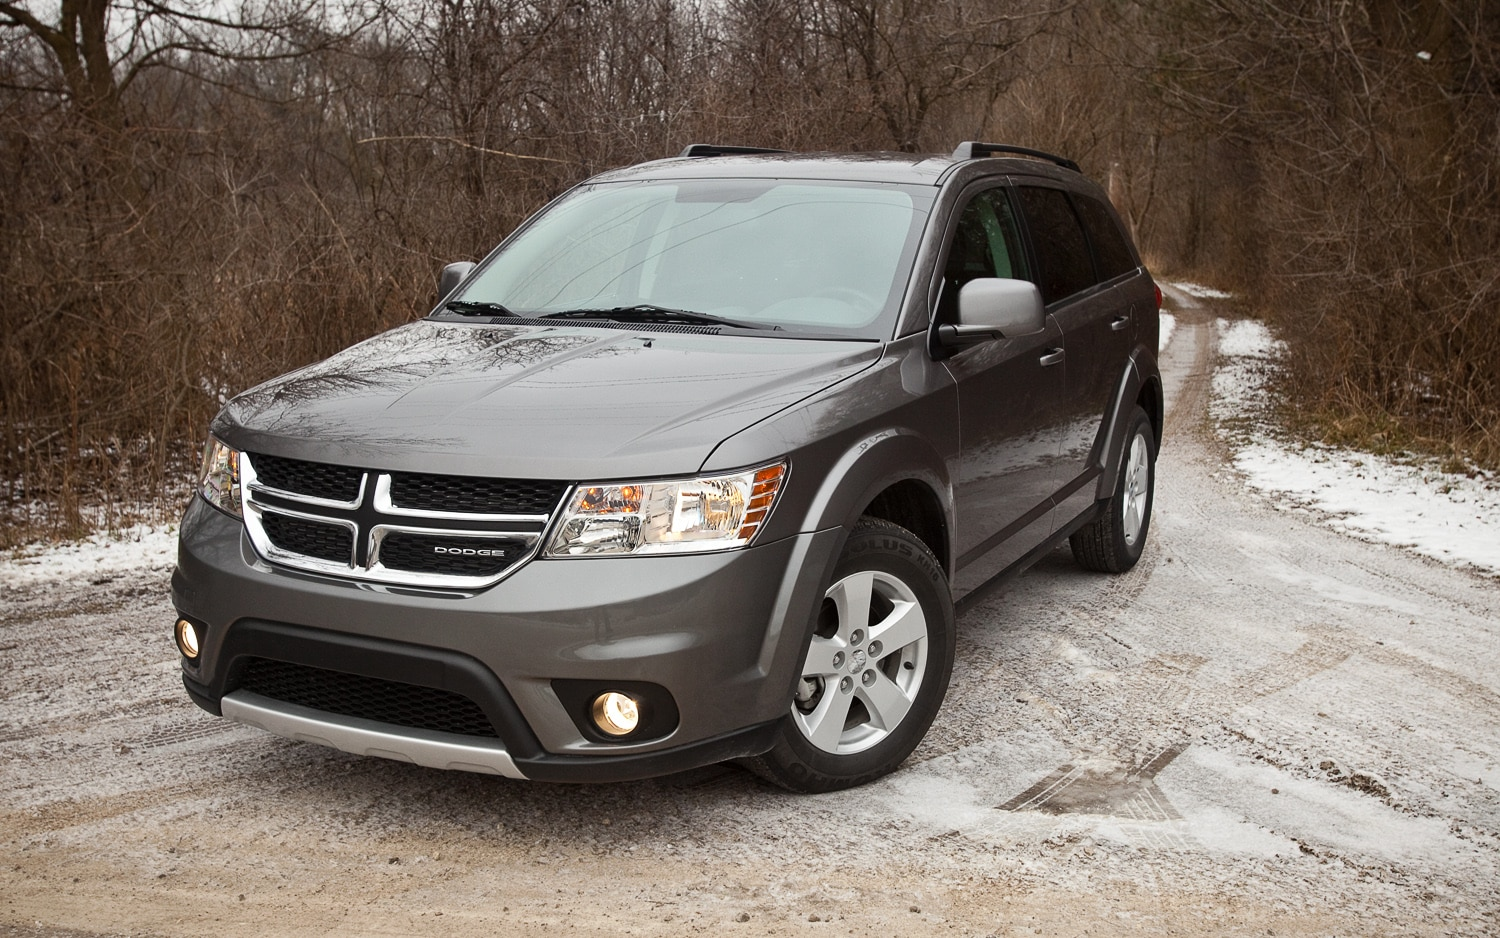 2012 Dodge Journey Tire Size >> 2012 Dodge Journey Tire Size Top New Car Release Date